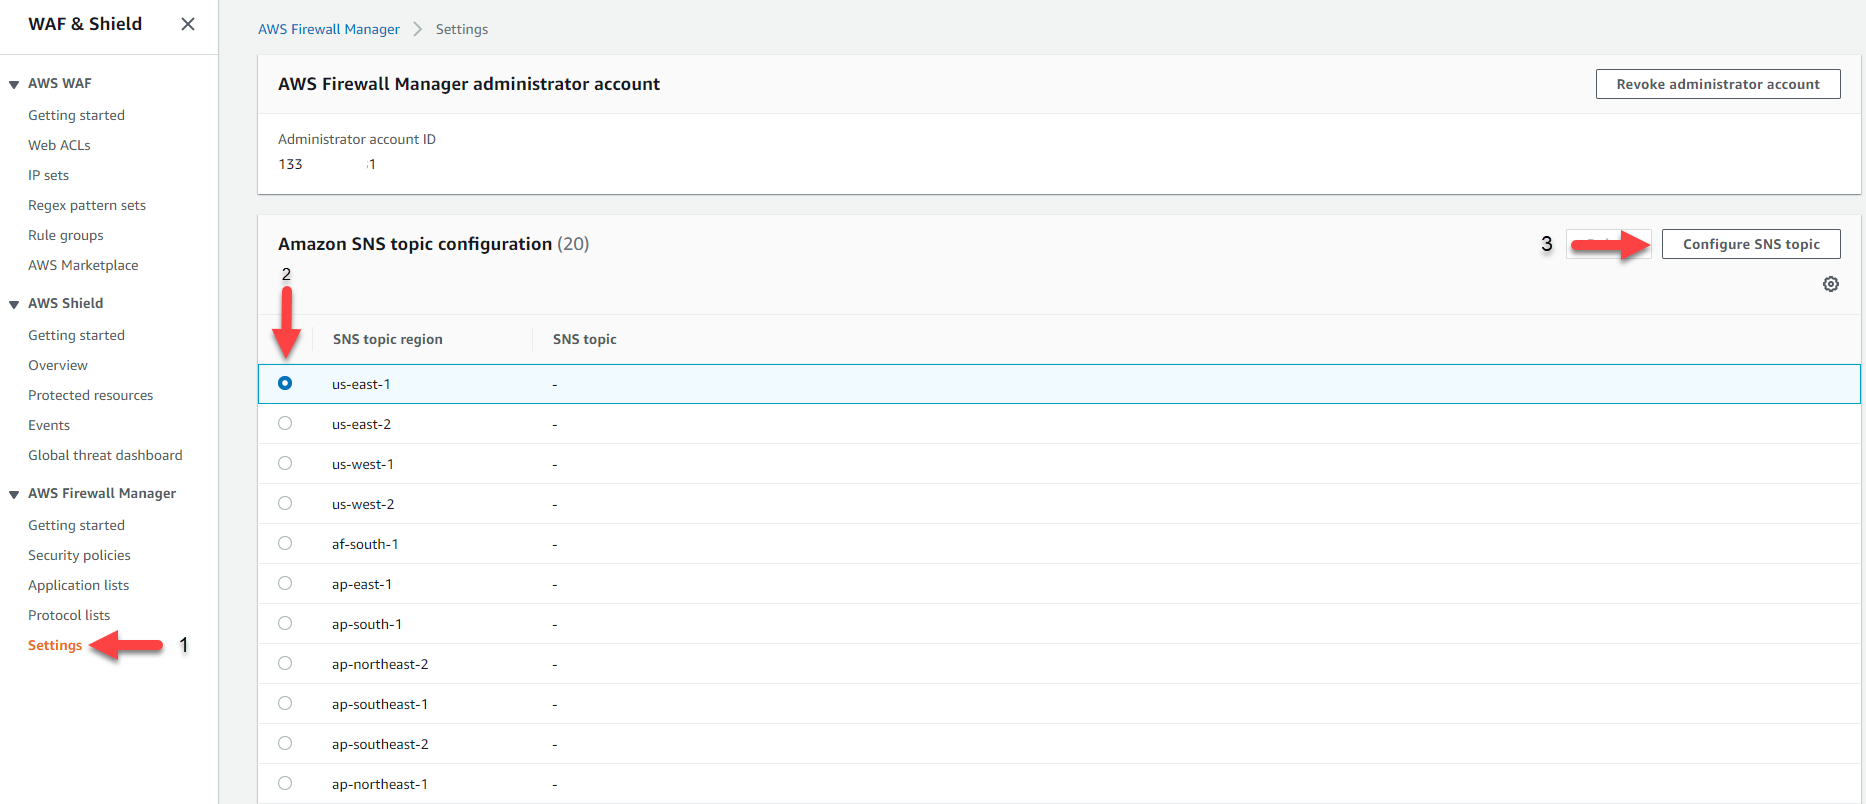 Figure 6: The Firewall Manager Settings page for configuring SNS topics